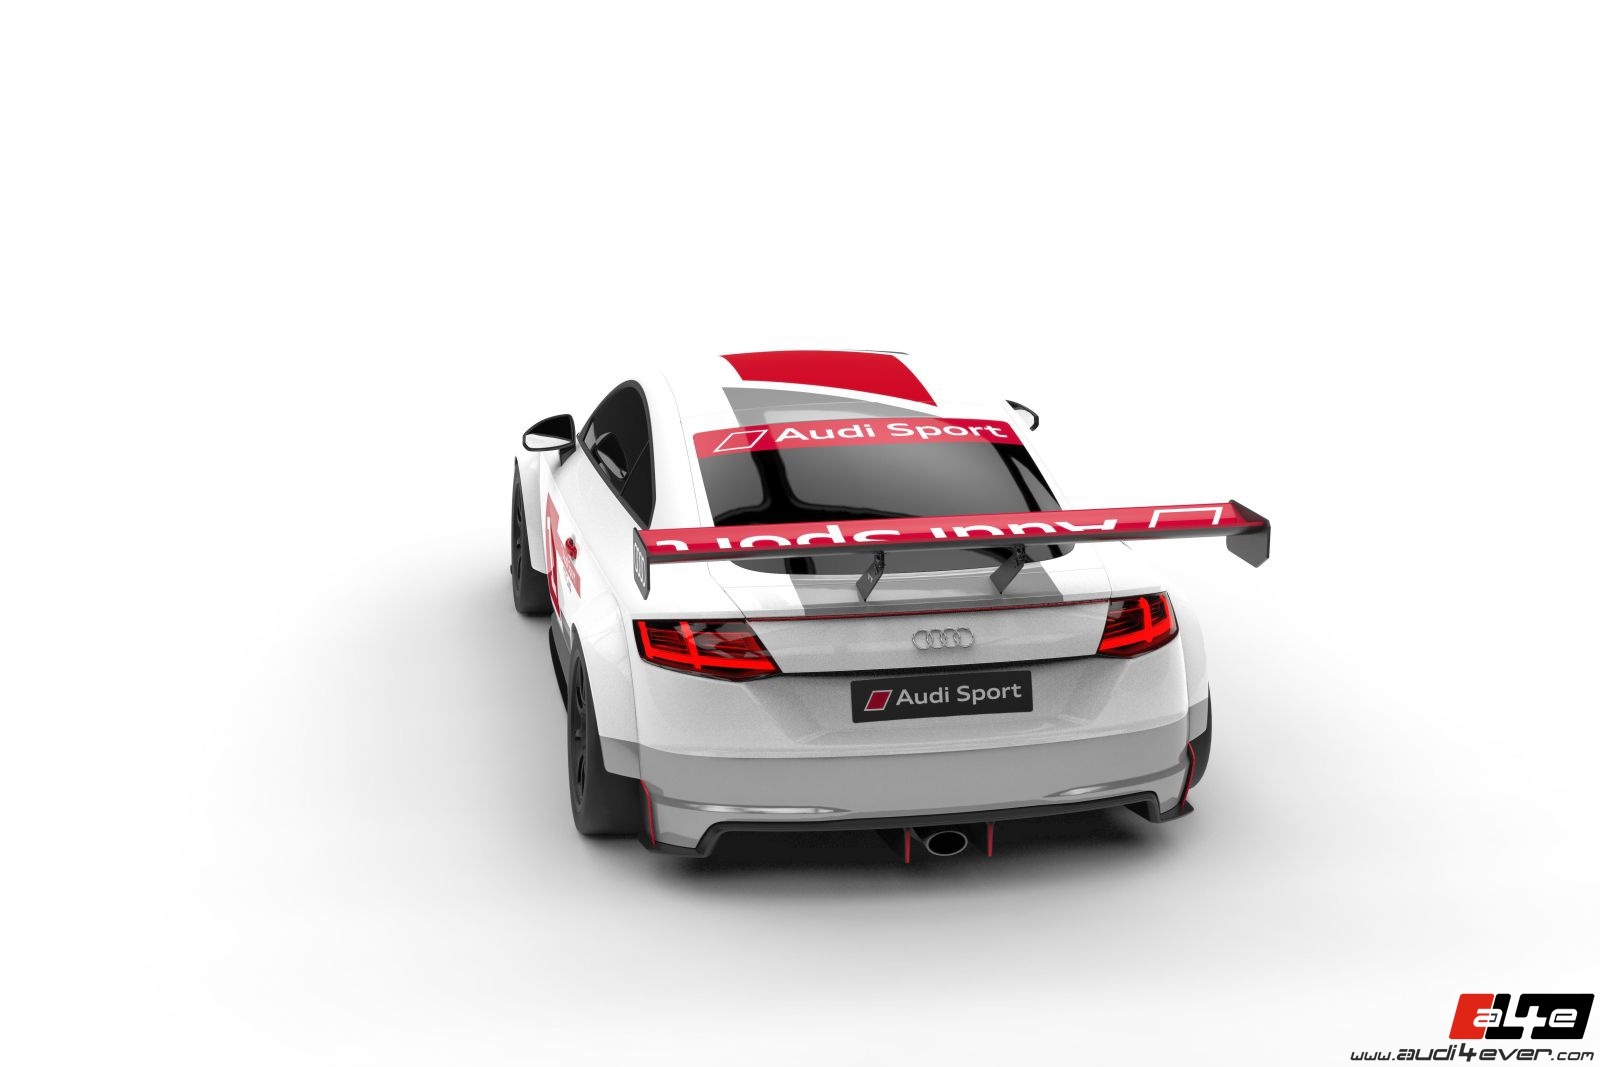 a4e gallery audi tt tts ttrs coupe roadster audi tt cup 2015. Black Bedroom Furniture Sets. Home Design Ideas